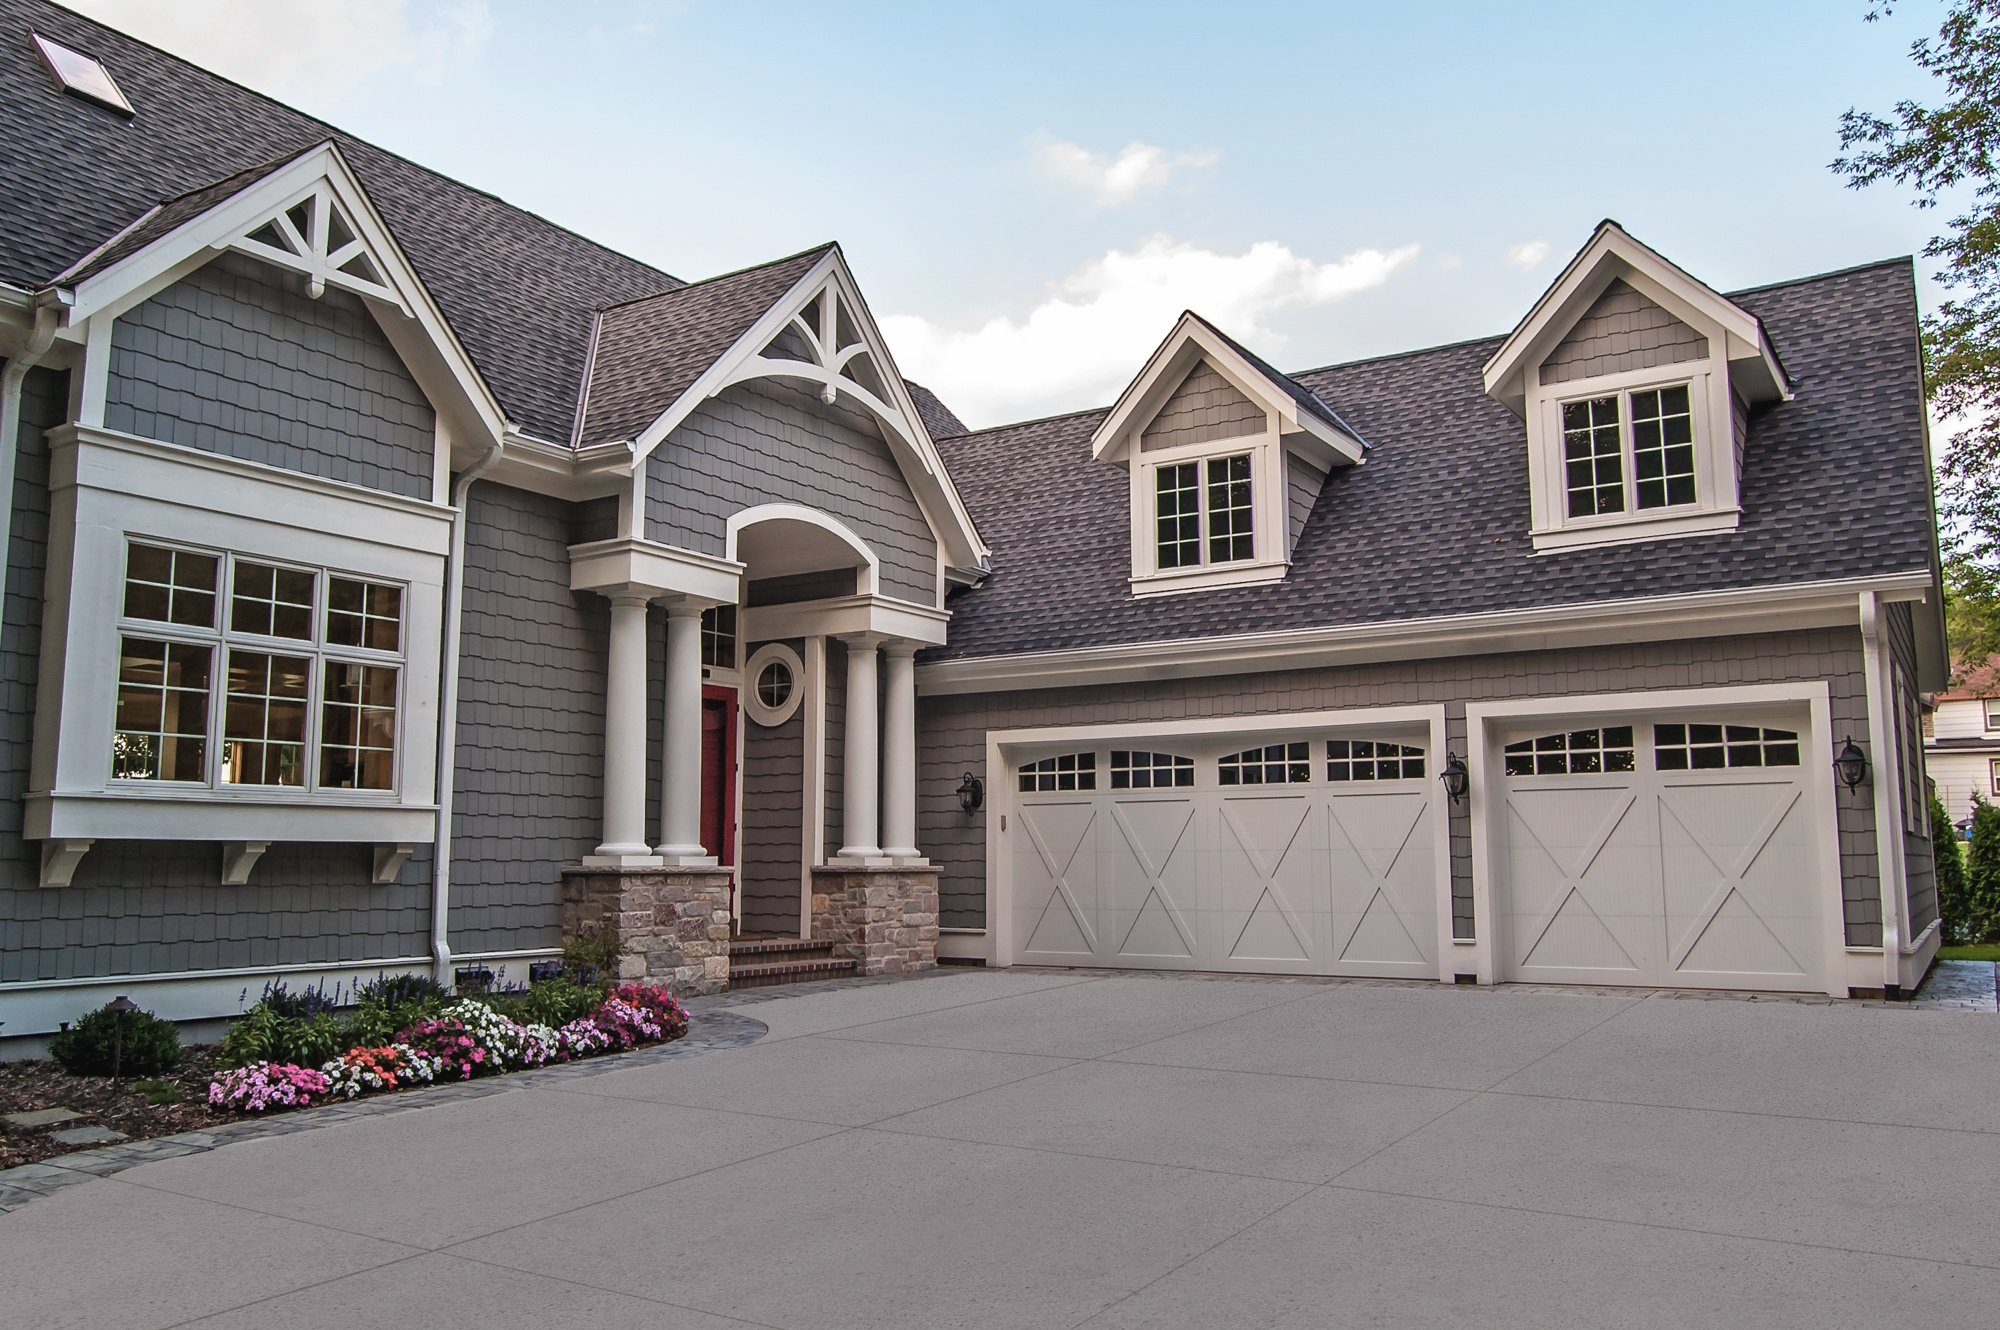 Carriage house overlay chi overhead doors chi0812090339g publicscrutiny Image collections